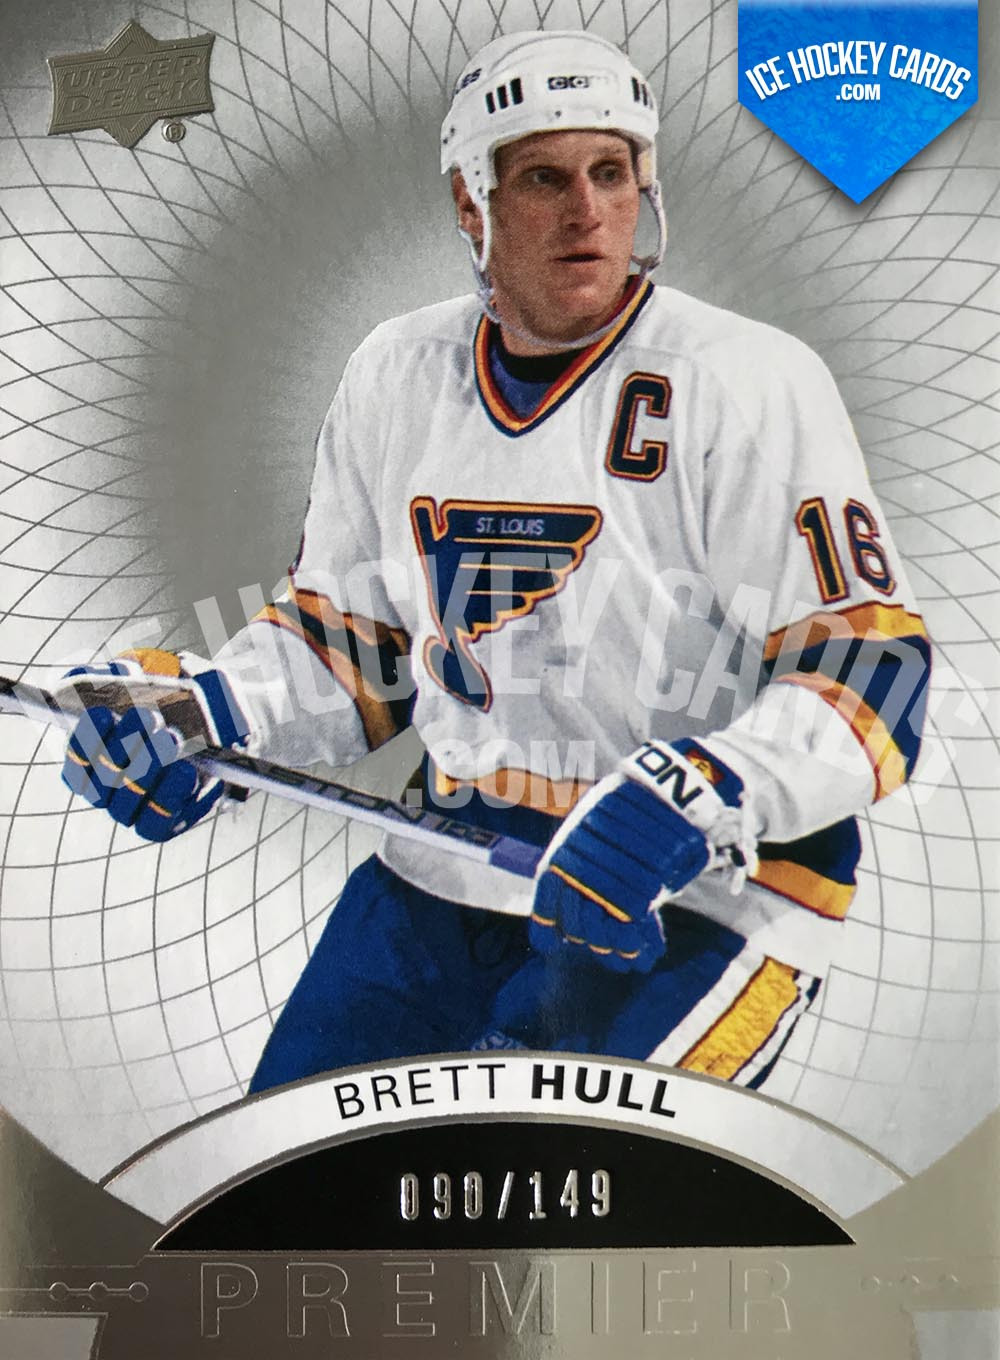 Upper Deck - Premier Hockey 2017-18 - Brett Hull Premier Legend Base Card